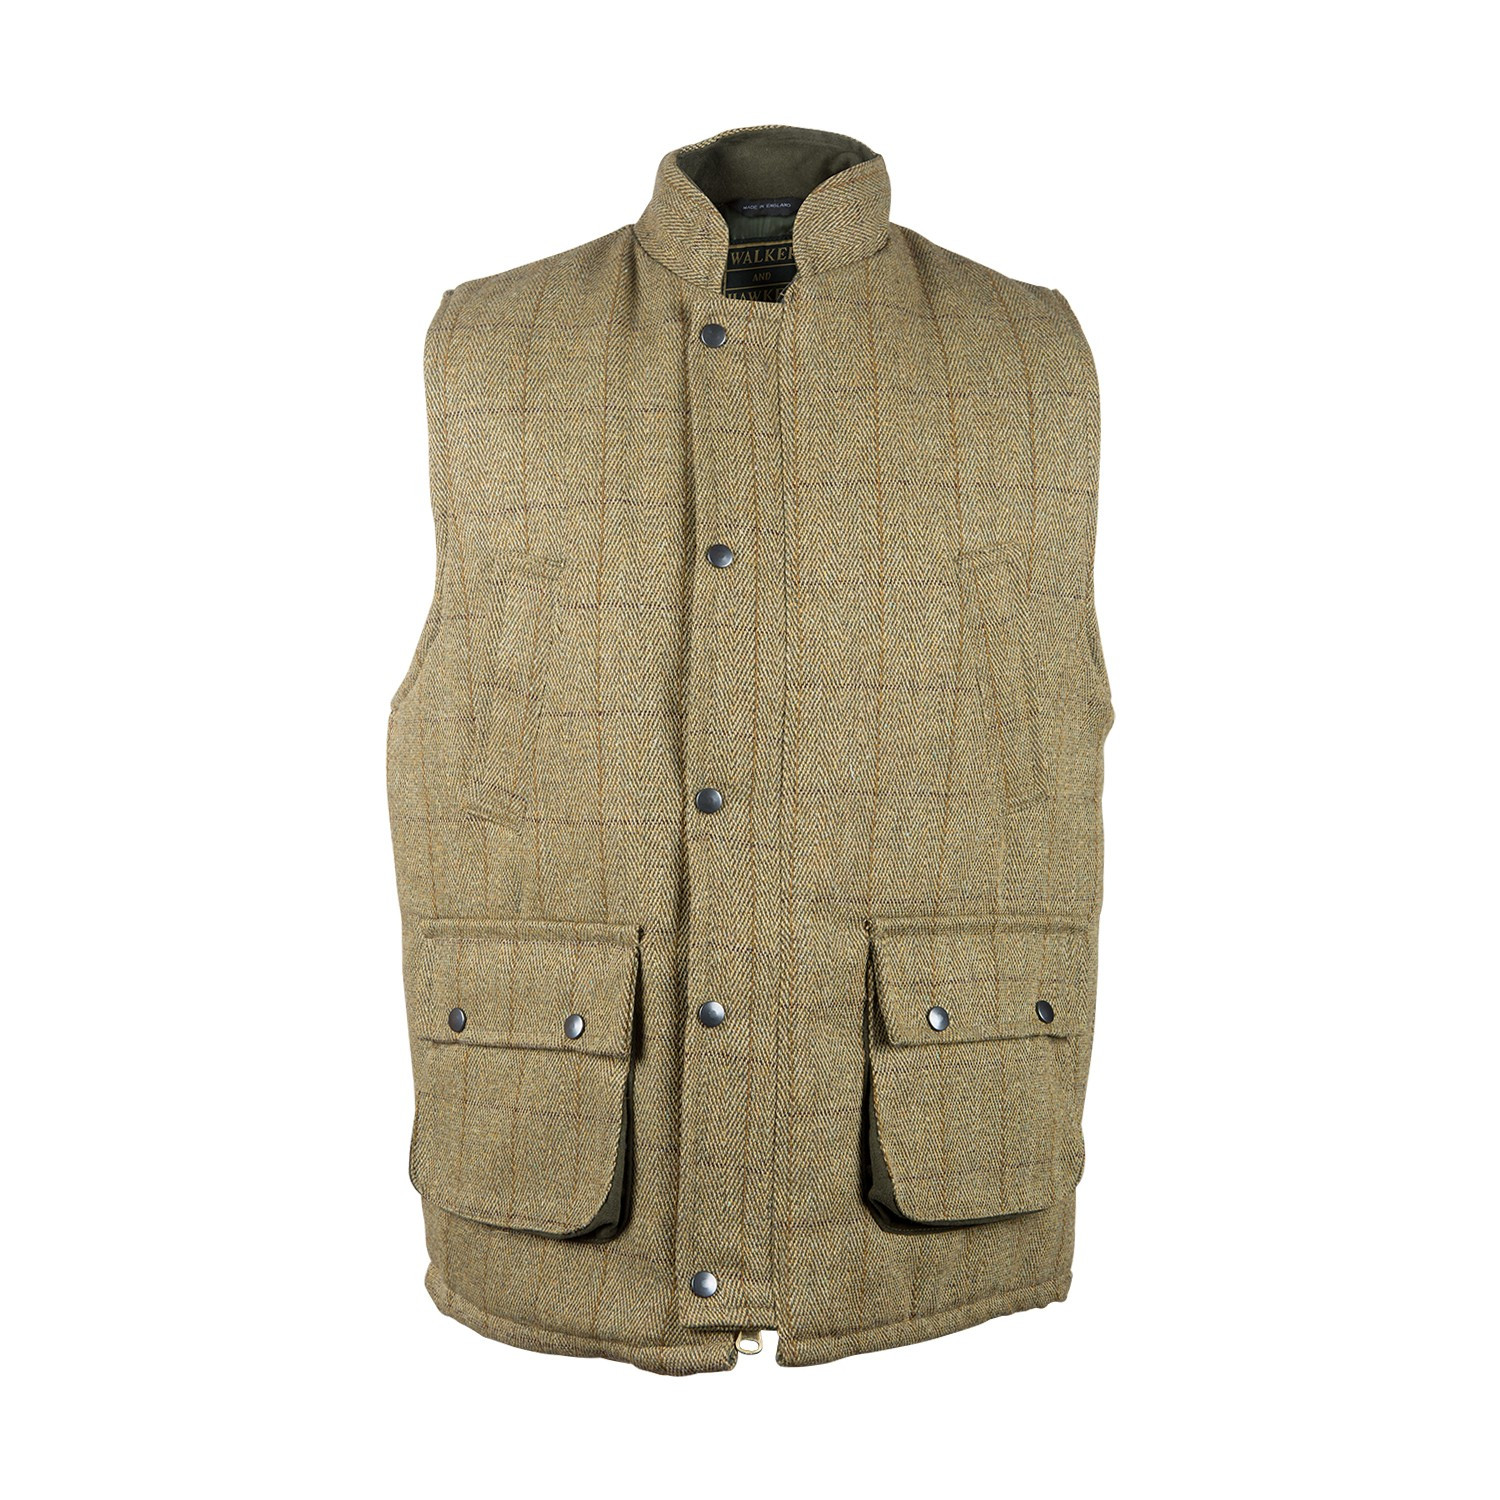 Gilet en tweed clair